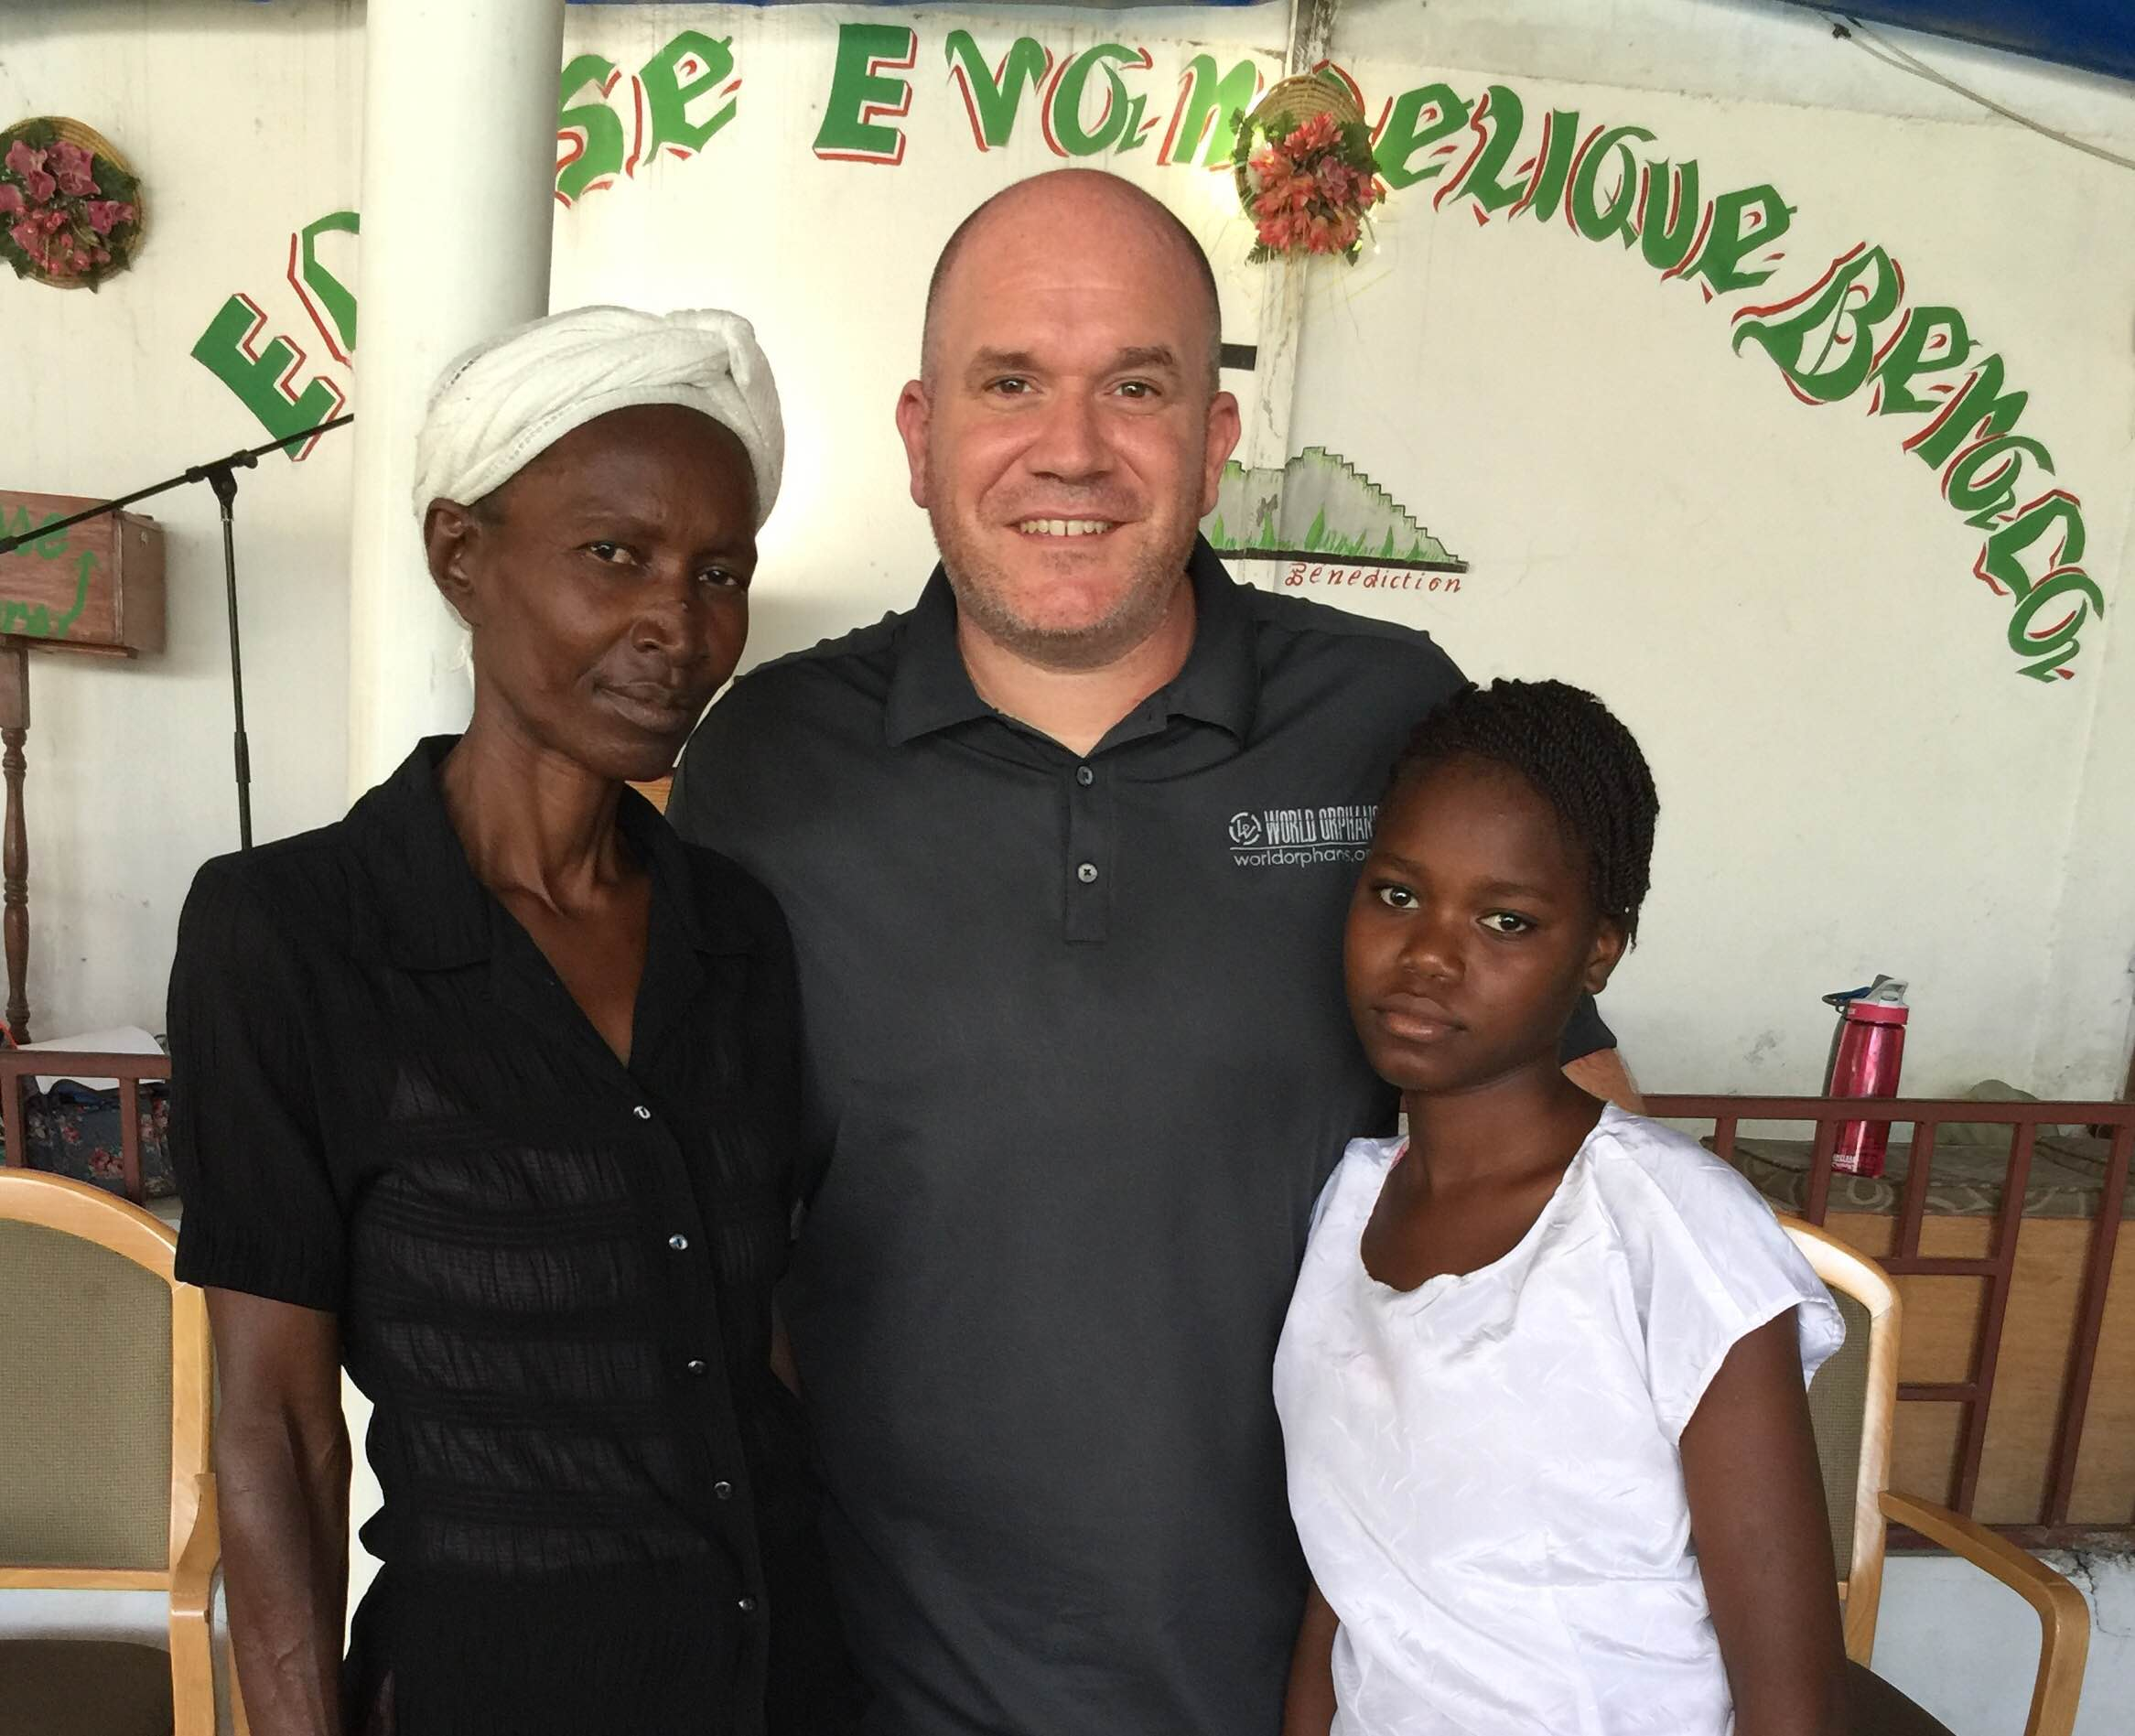 Frimose, Sr. Church Partnership Director Kevin Squires, and Saraphina